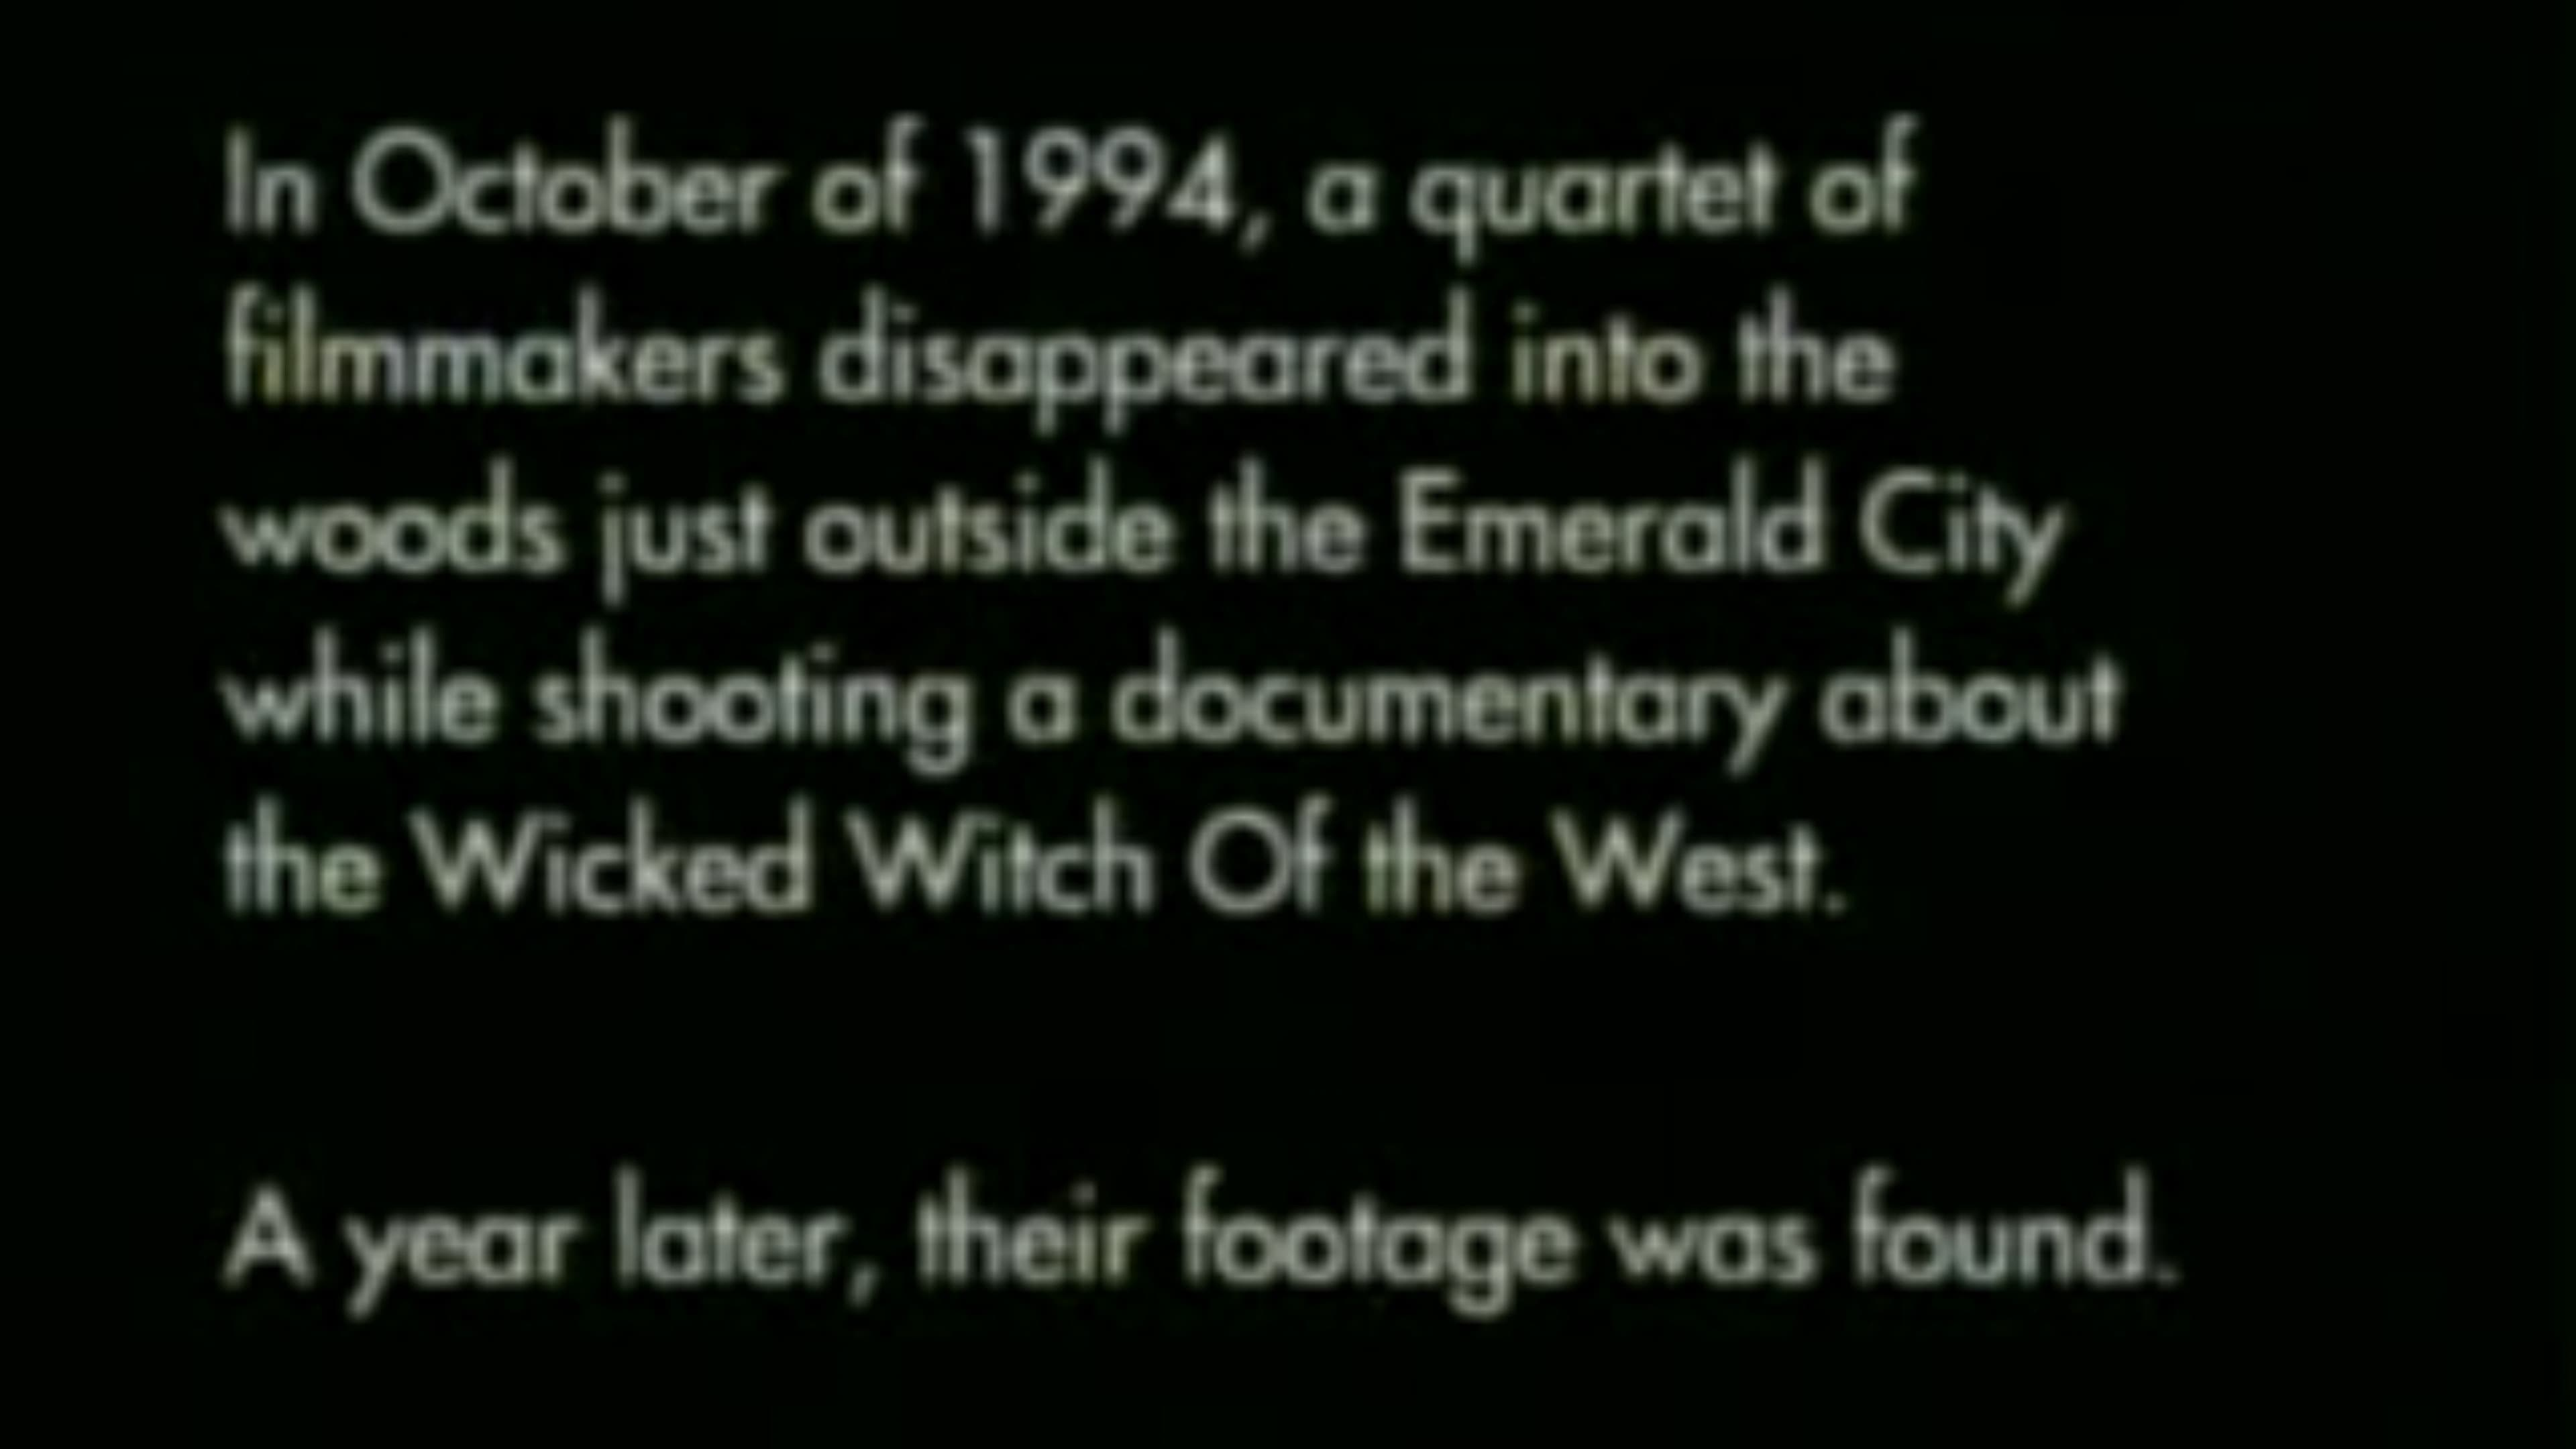 The Wicked Witch Project